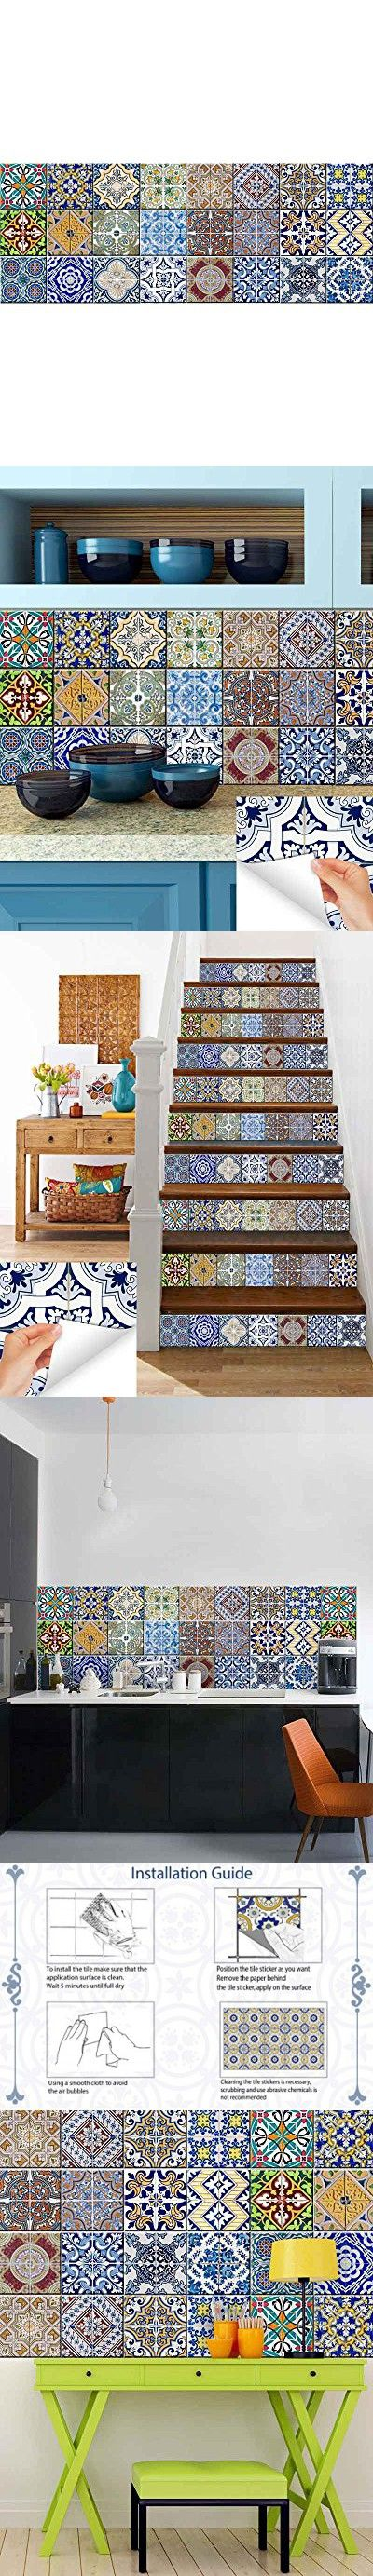 Tile Stickers 24 PC Set Authentic Traditional Talavera Tiles Stickers Bathroom & Kitchen Tile Decals Easy to Apply Just Peel & Stick Home Decor 6x6 Inch (Kitchen Tile Stickers HA1)